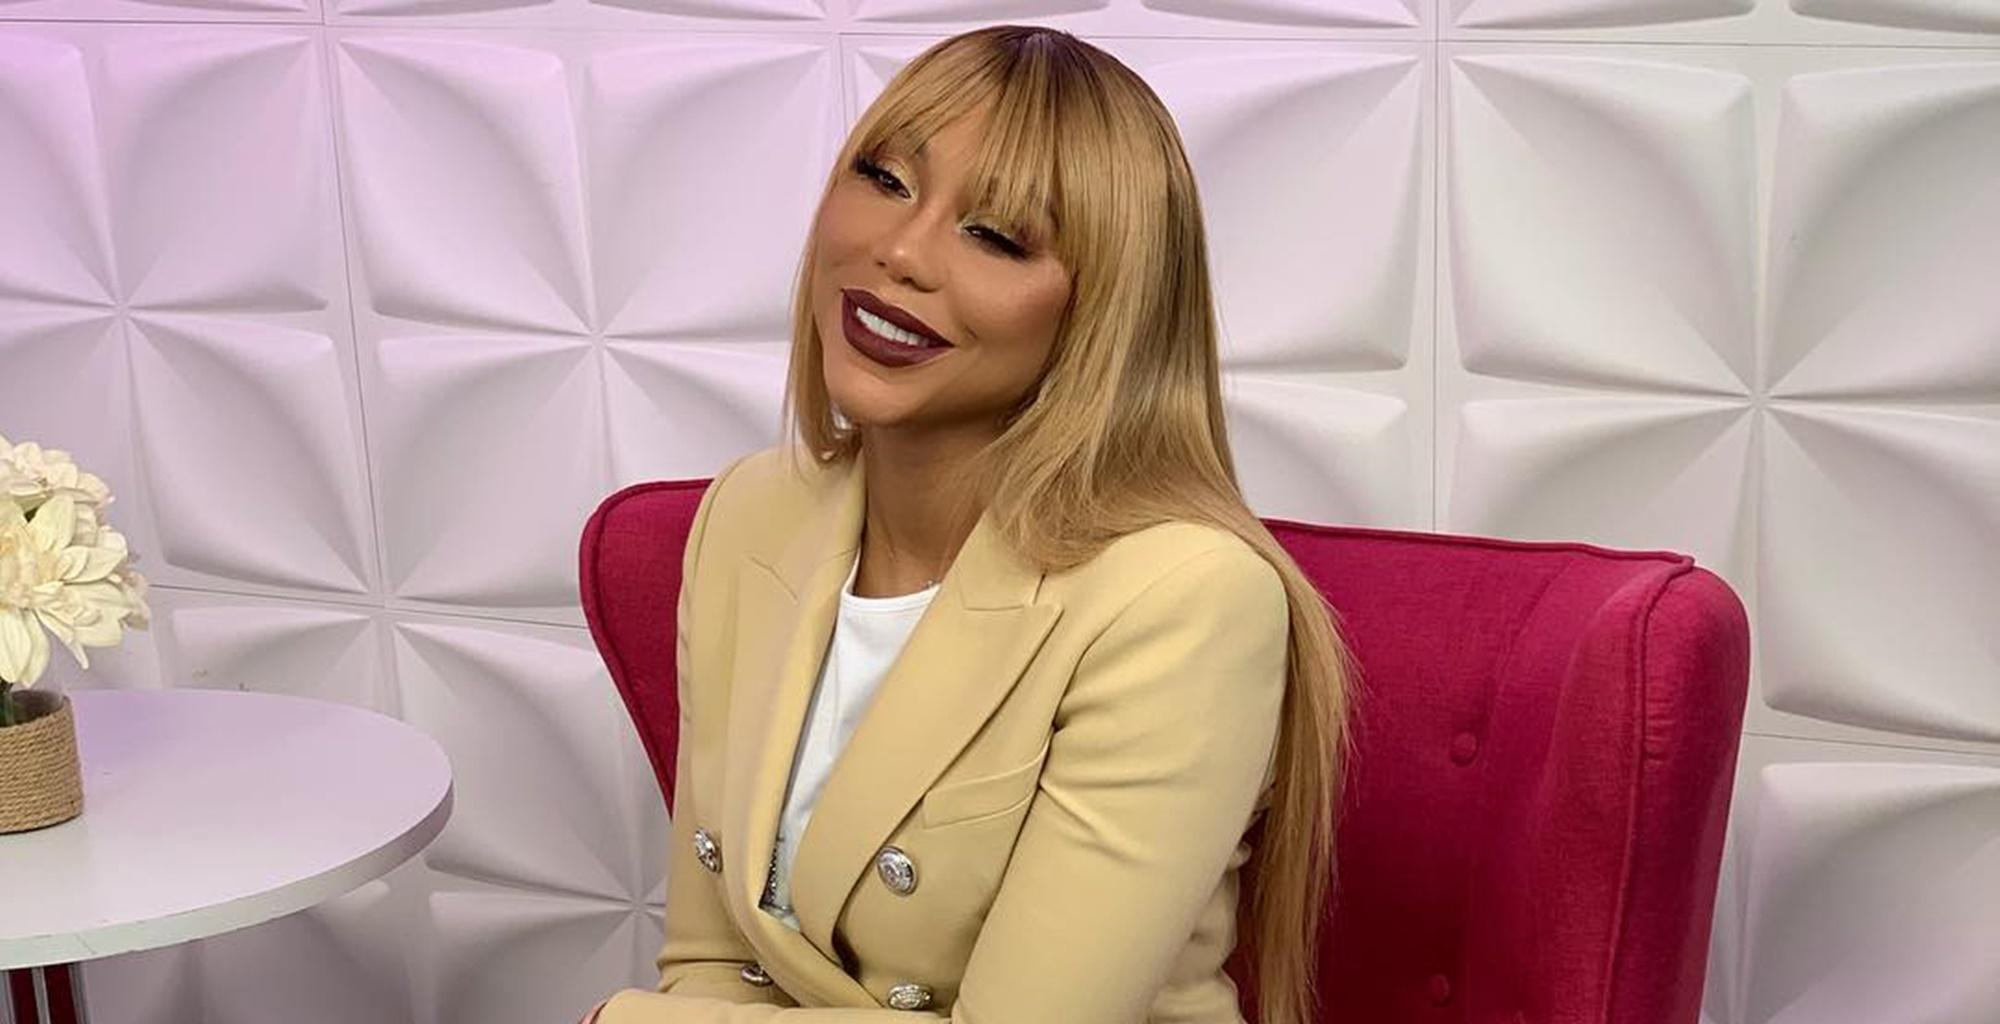 Tamar Braxton's BF, David Adefeso Shared A Video That Has Her Worried: 'What Are You Going To Tell My Mother?'